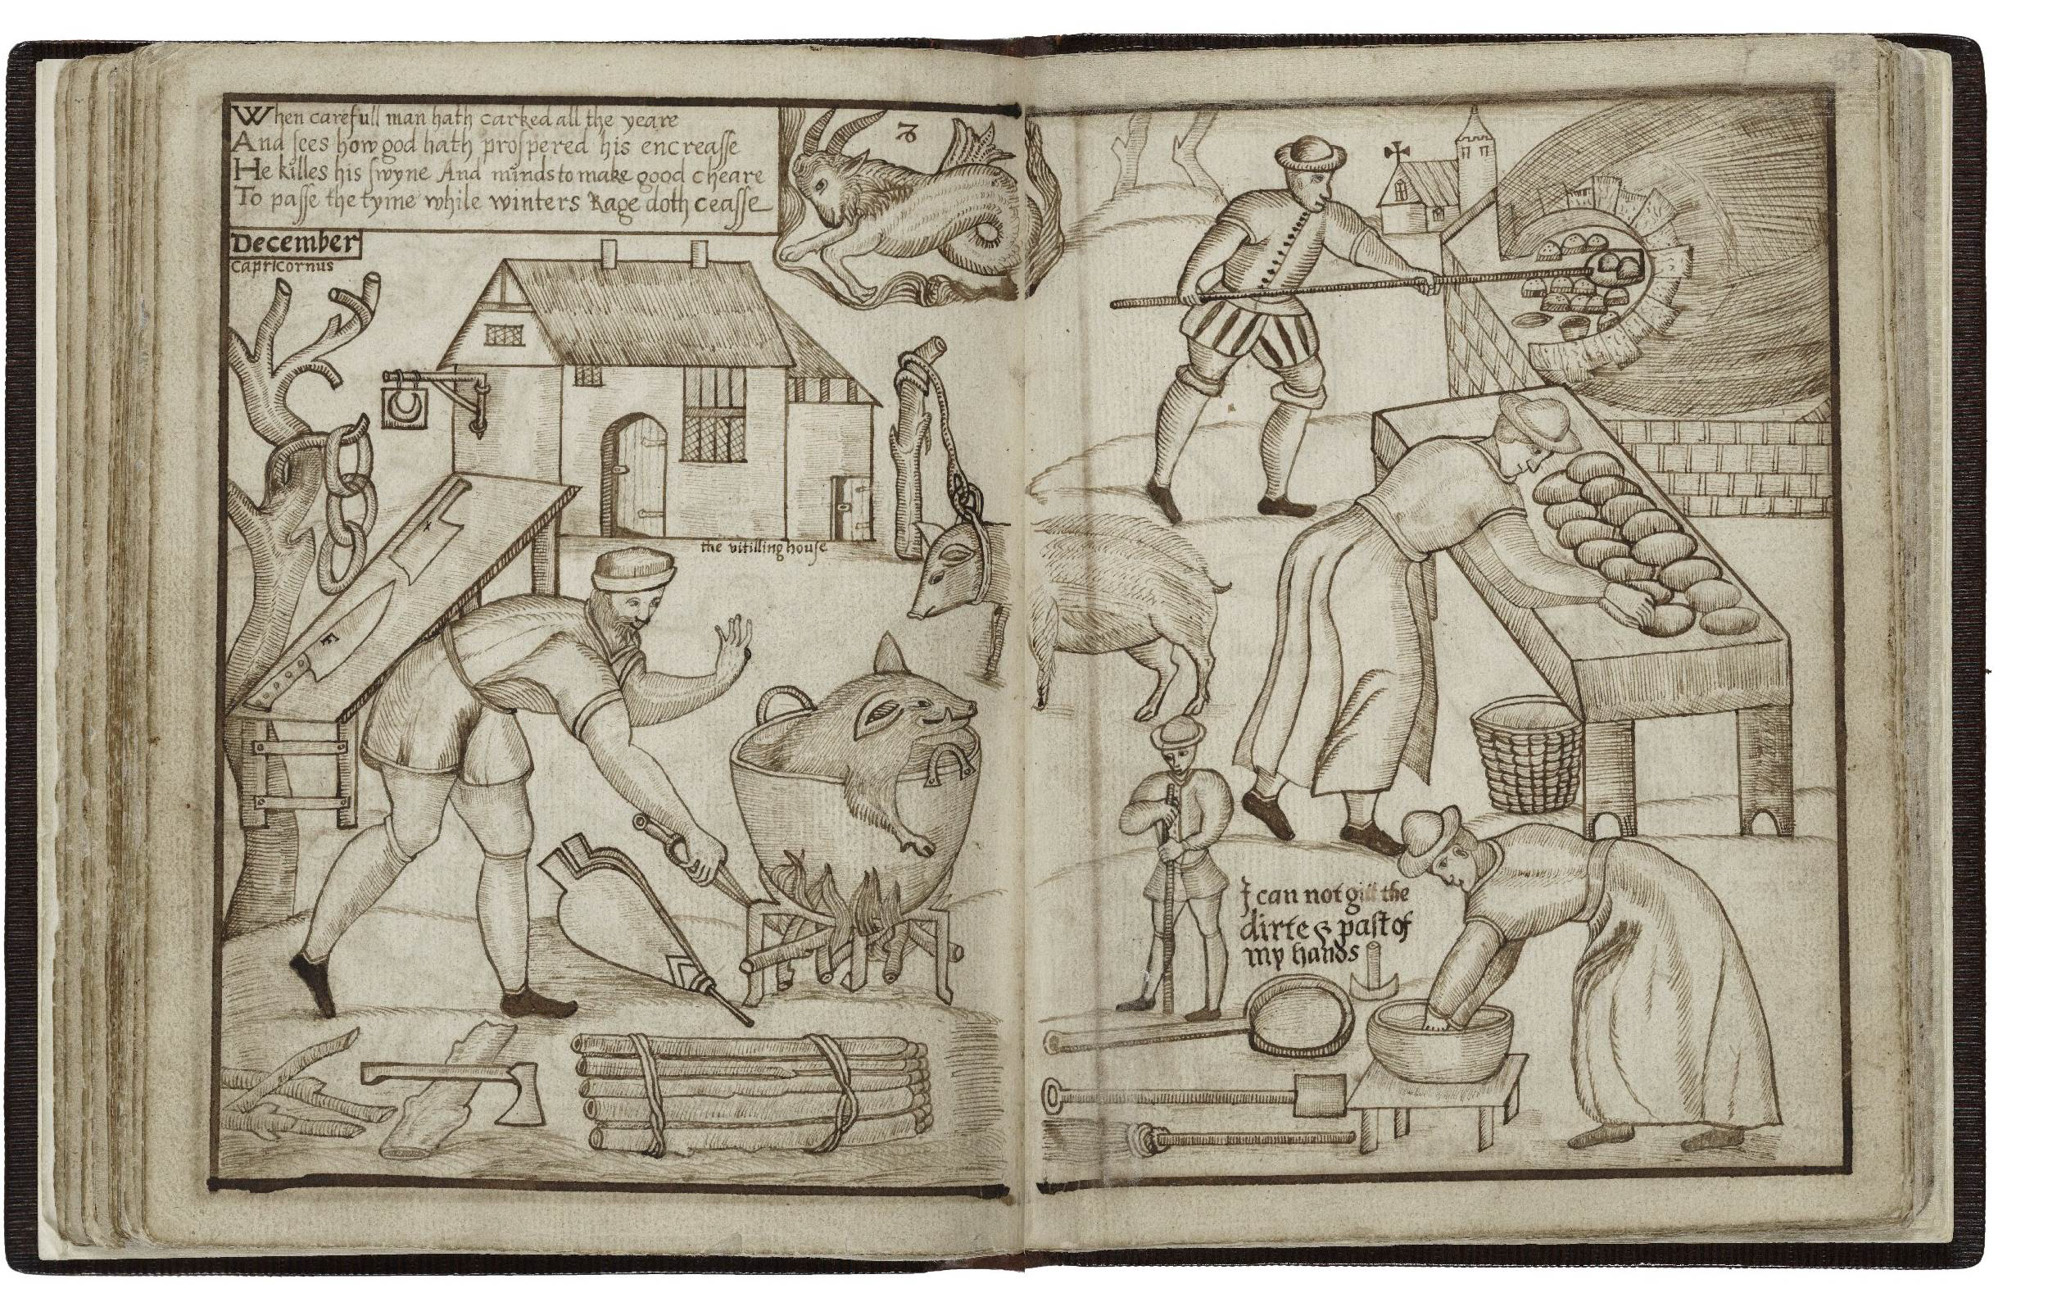 Yeomen in December - Slaughtering pigs and baking bread